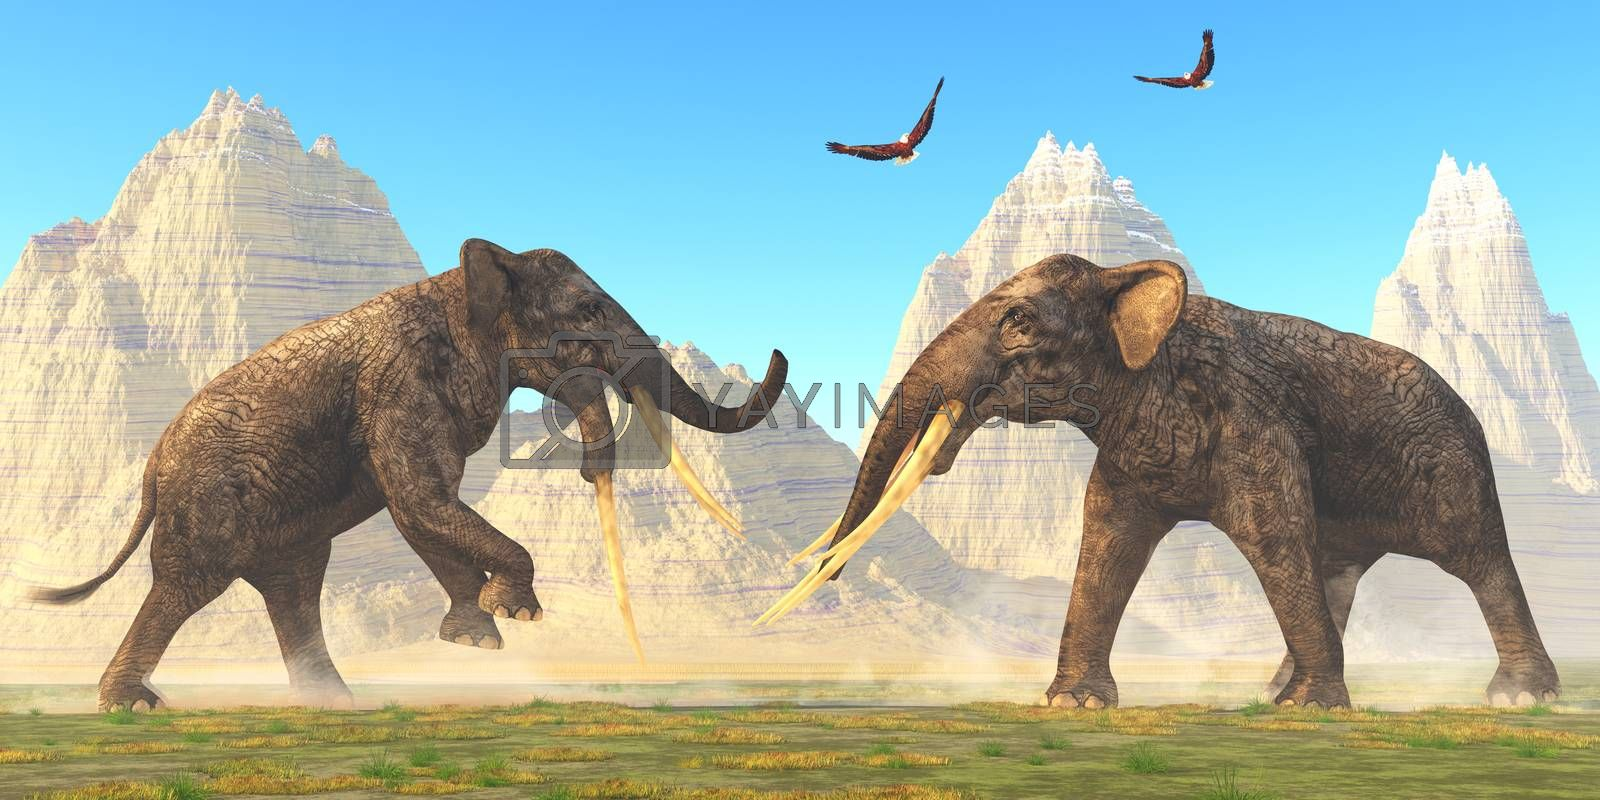 Two bull Stegotetrabelodon fight each other for mating rights in the herd during the Miocene Period.